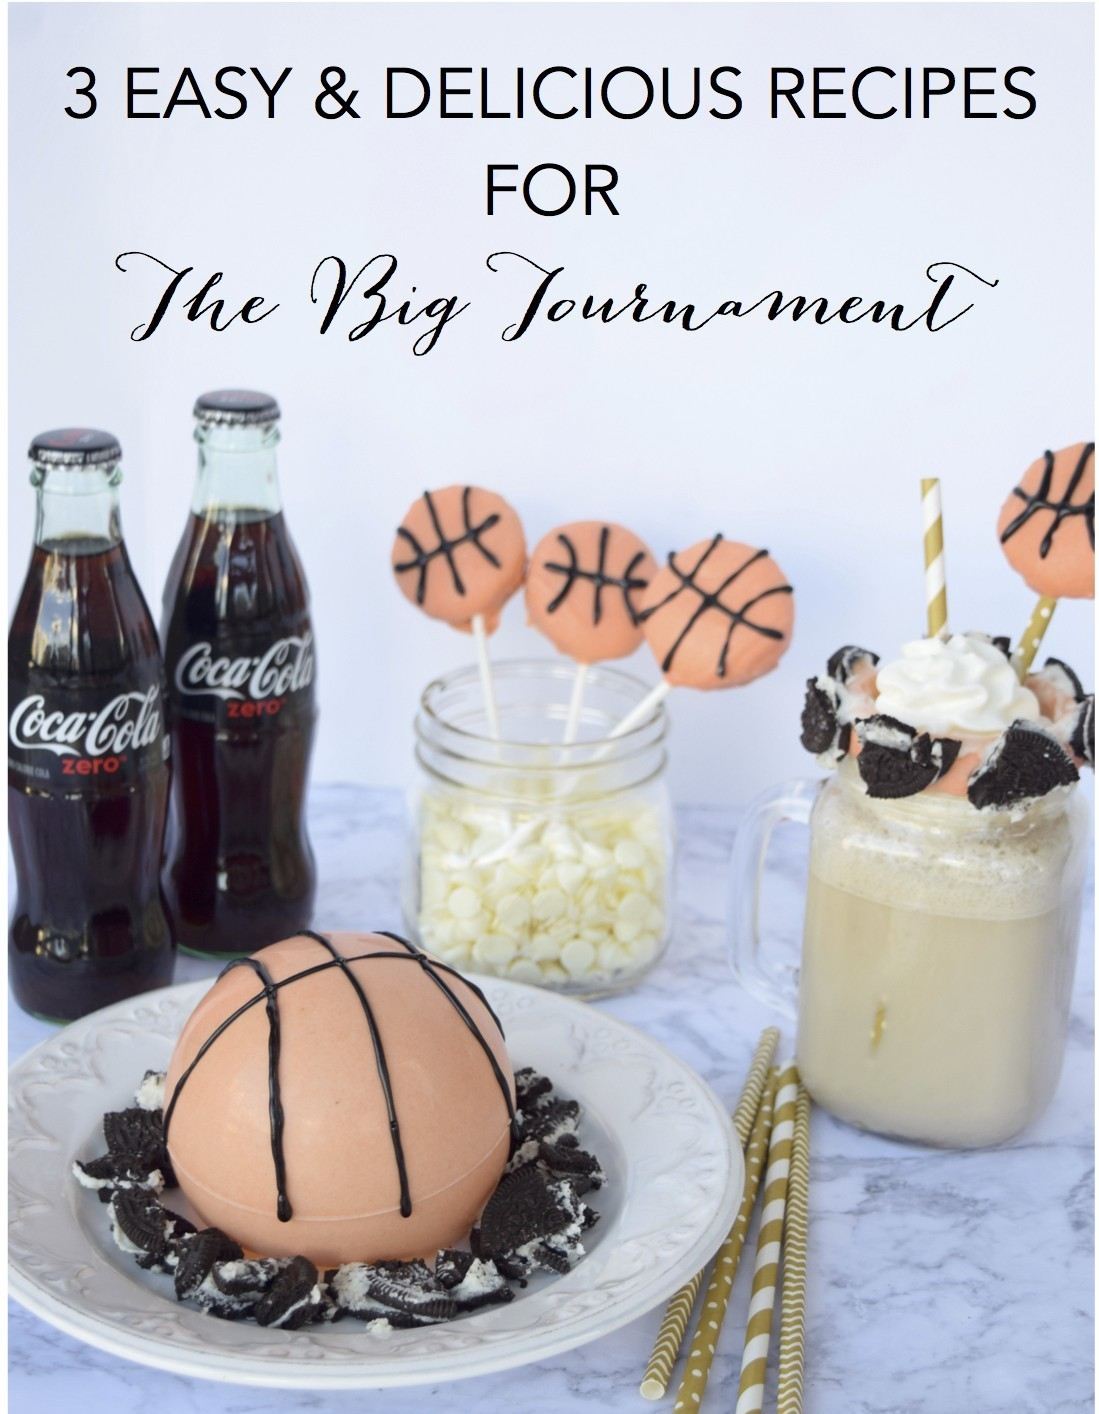 3 Easy & Delicious Recipes For The Big Tournament